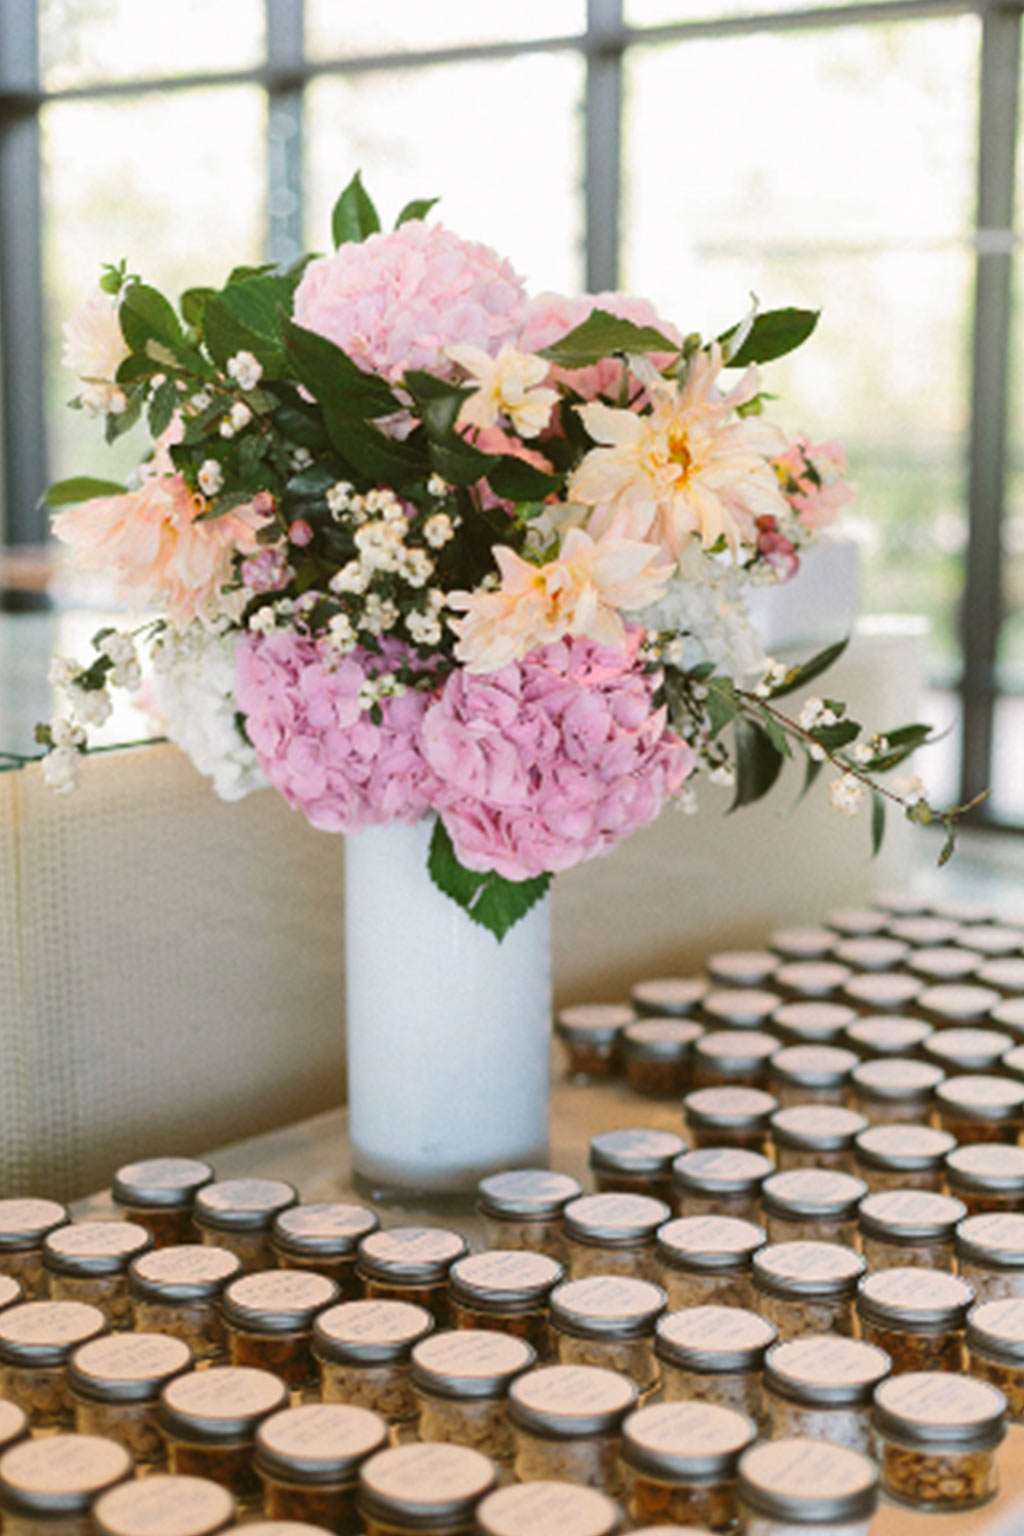 Cookie jar wedding escort card setup with pink and peach floral